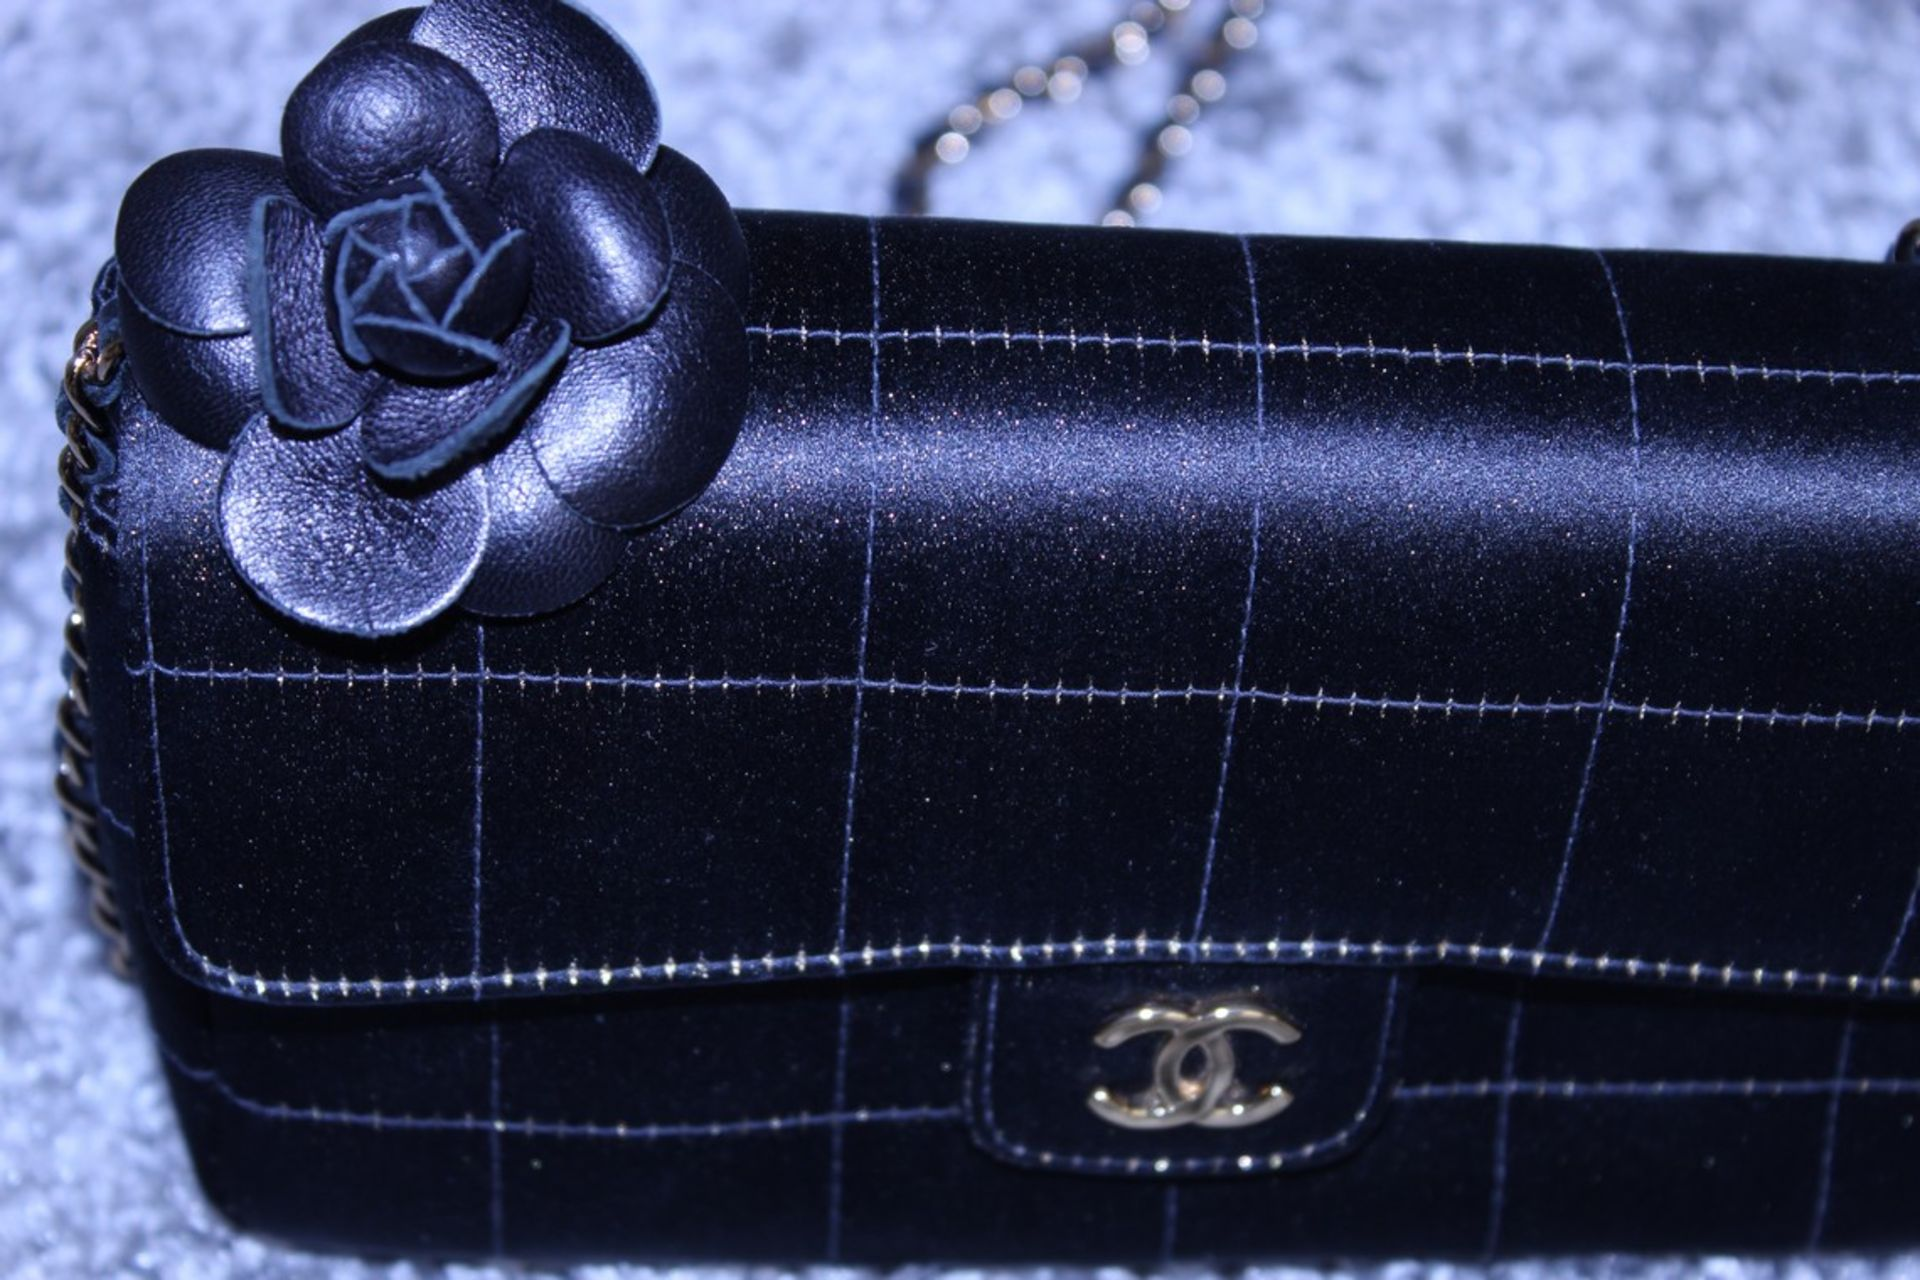 RRP £3,500 Chanel Timess Silk Bag, Black Canvas Square Quilted, Gold Chain Handles (Production - Image 2 of 4